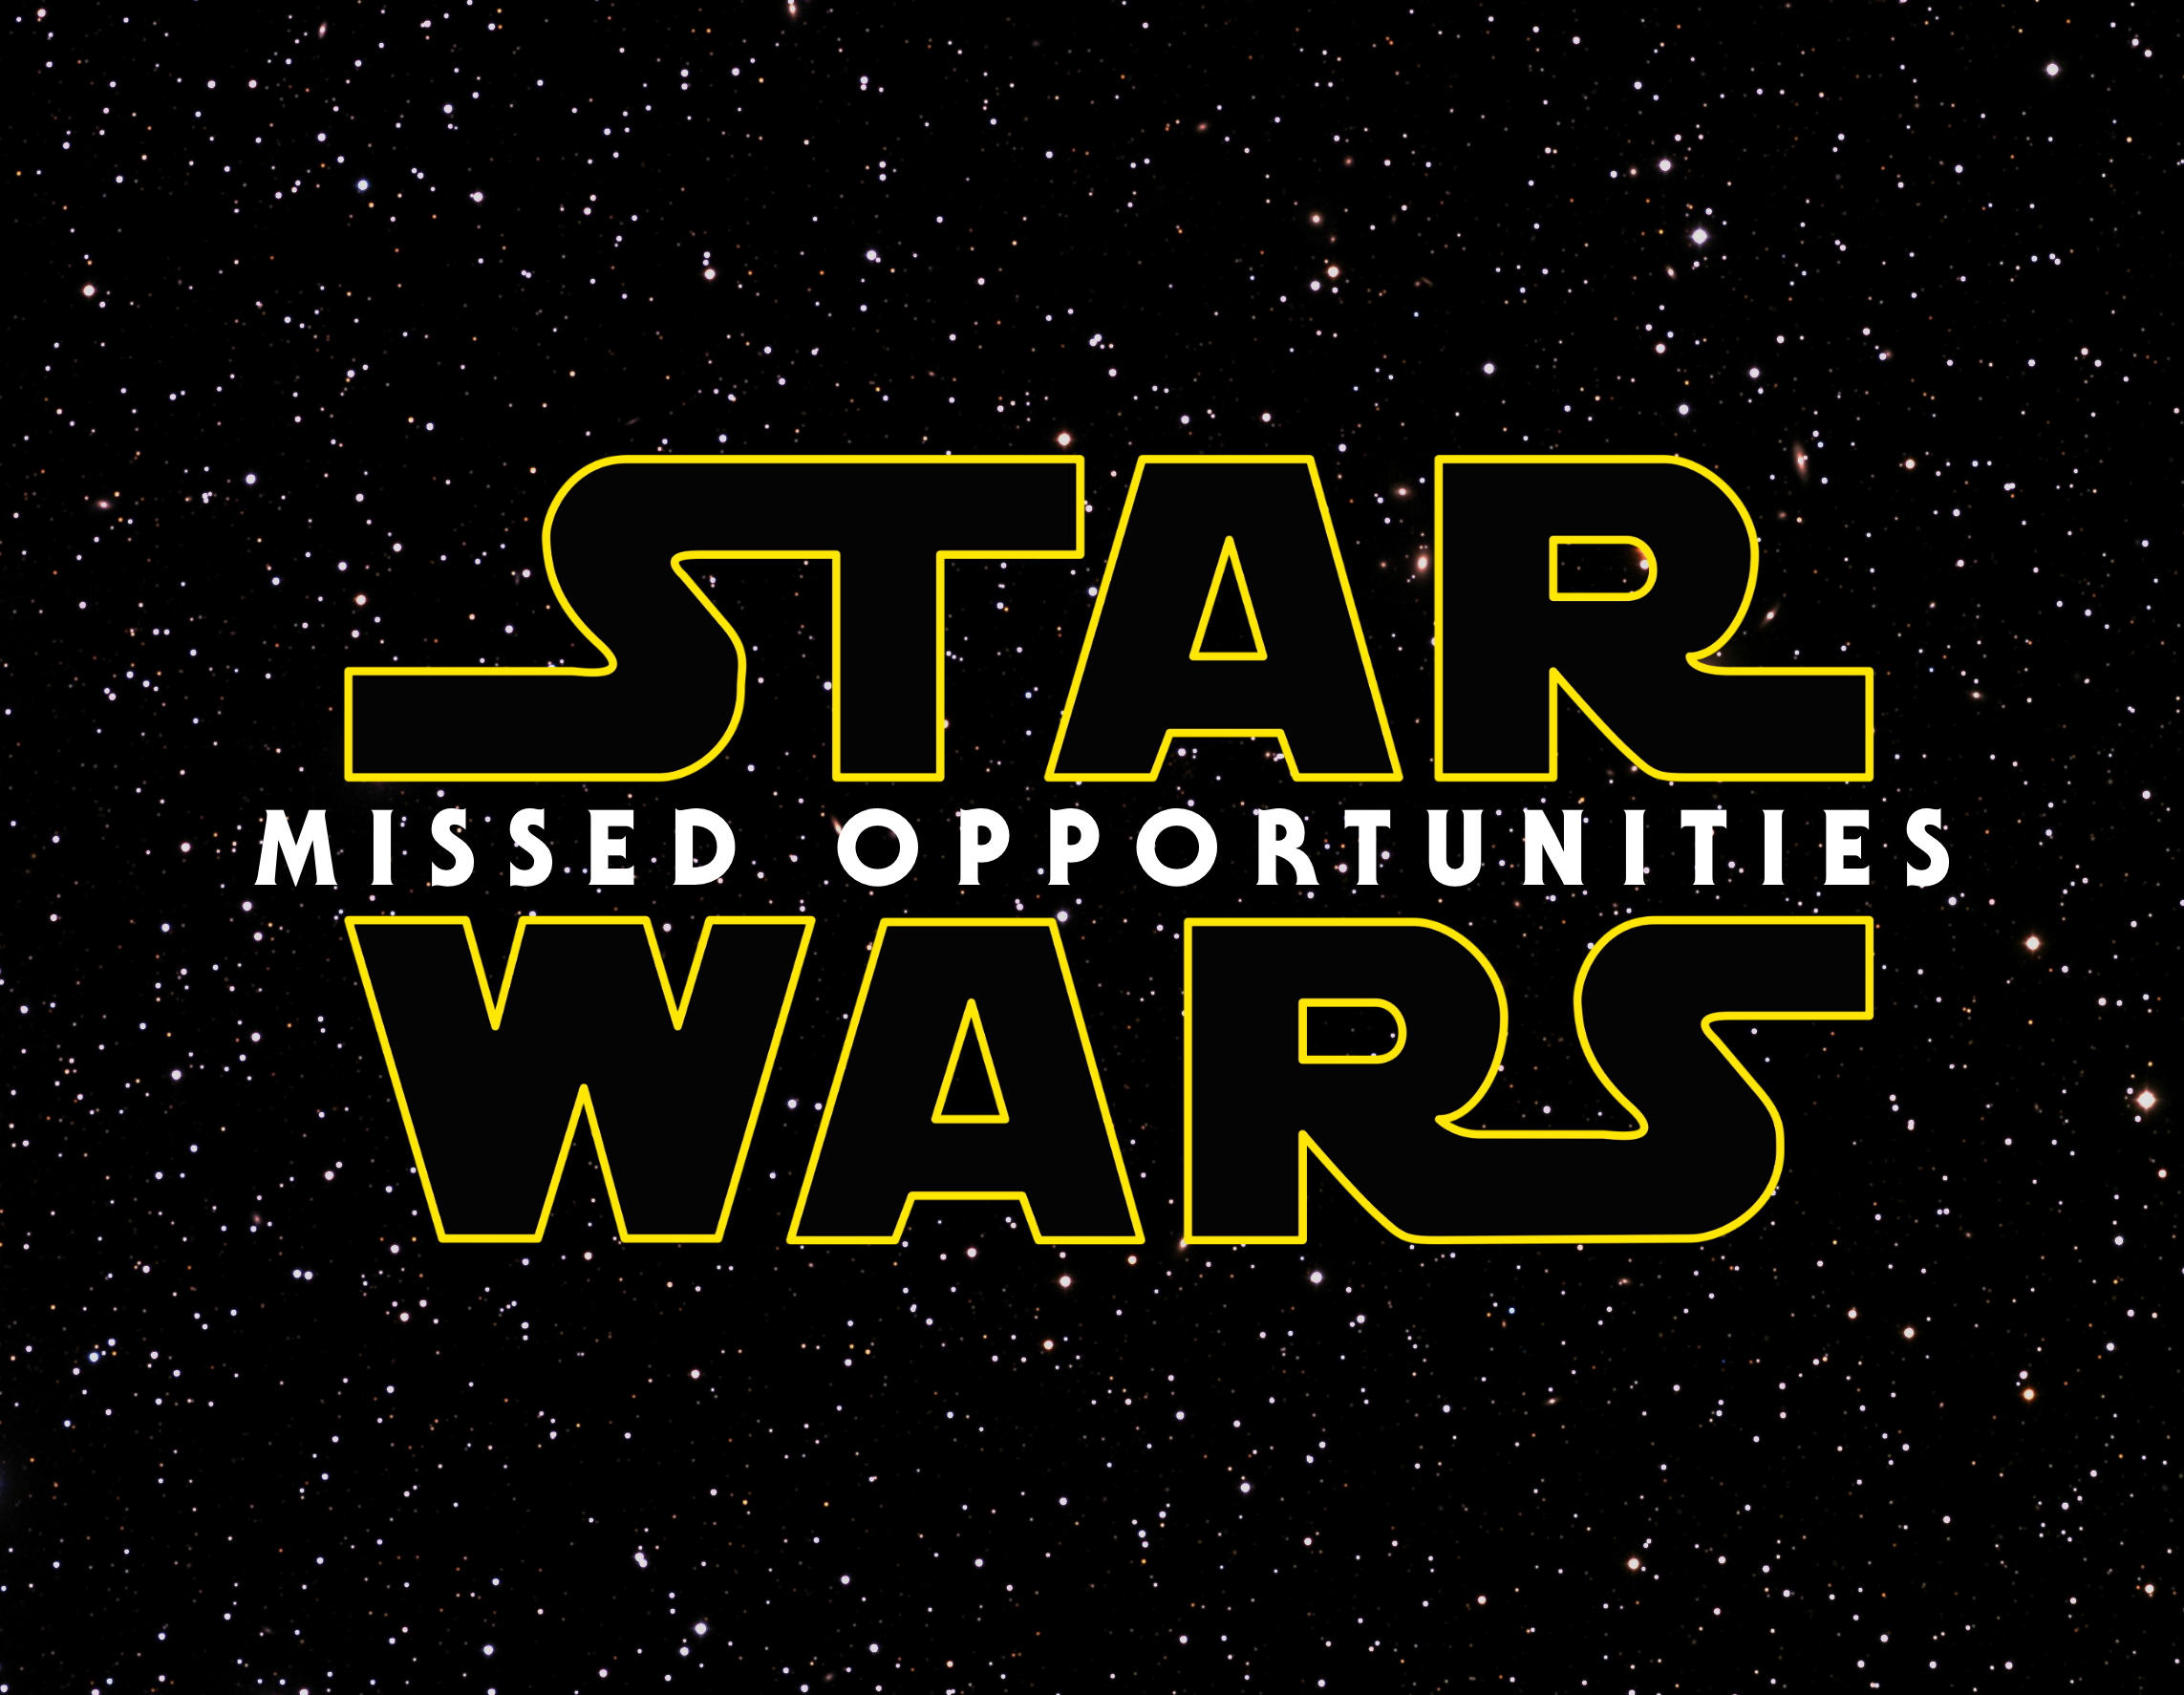 Once a generation, there comes a clunker of a Star Wars film...